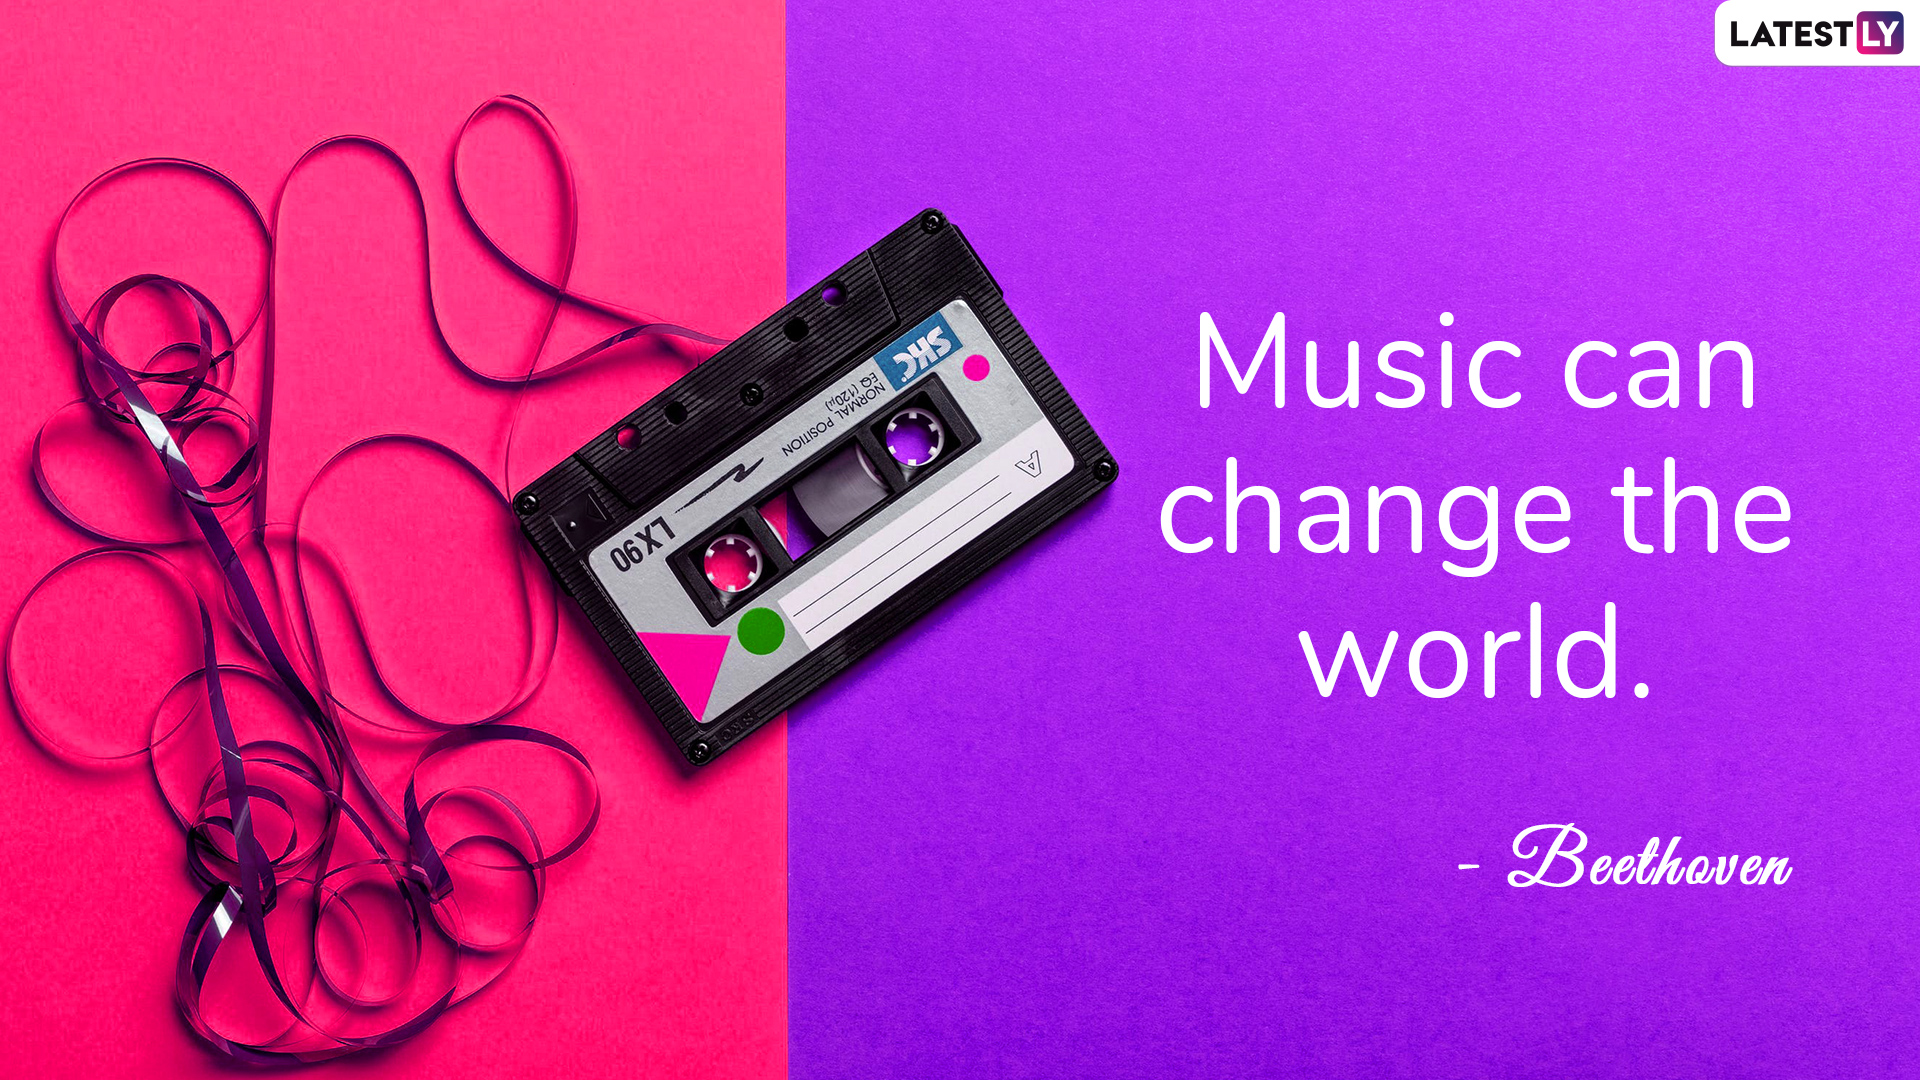 Beethoven's quote on music to celebrate World Music Day 2019 (Photo credits: File Image)